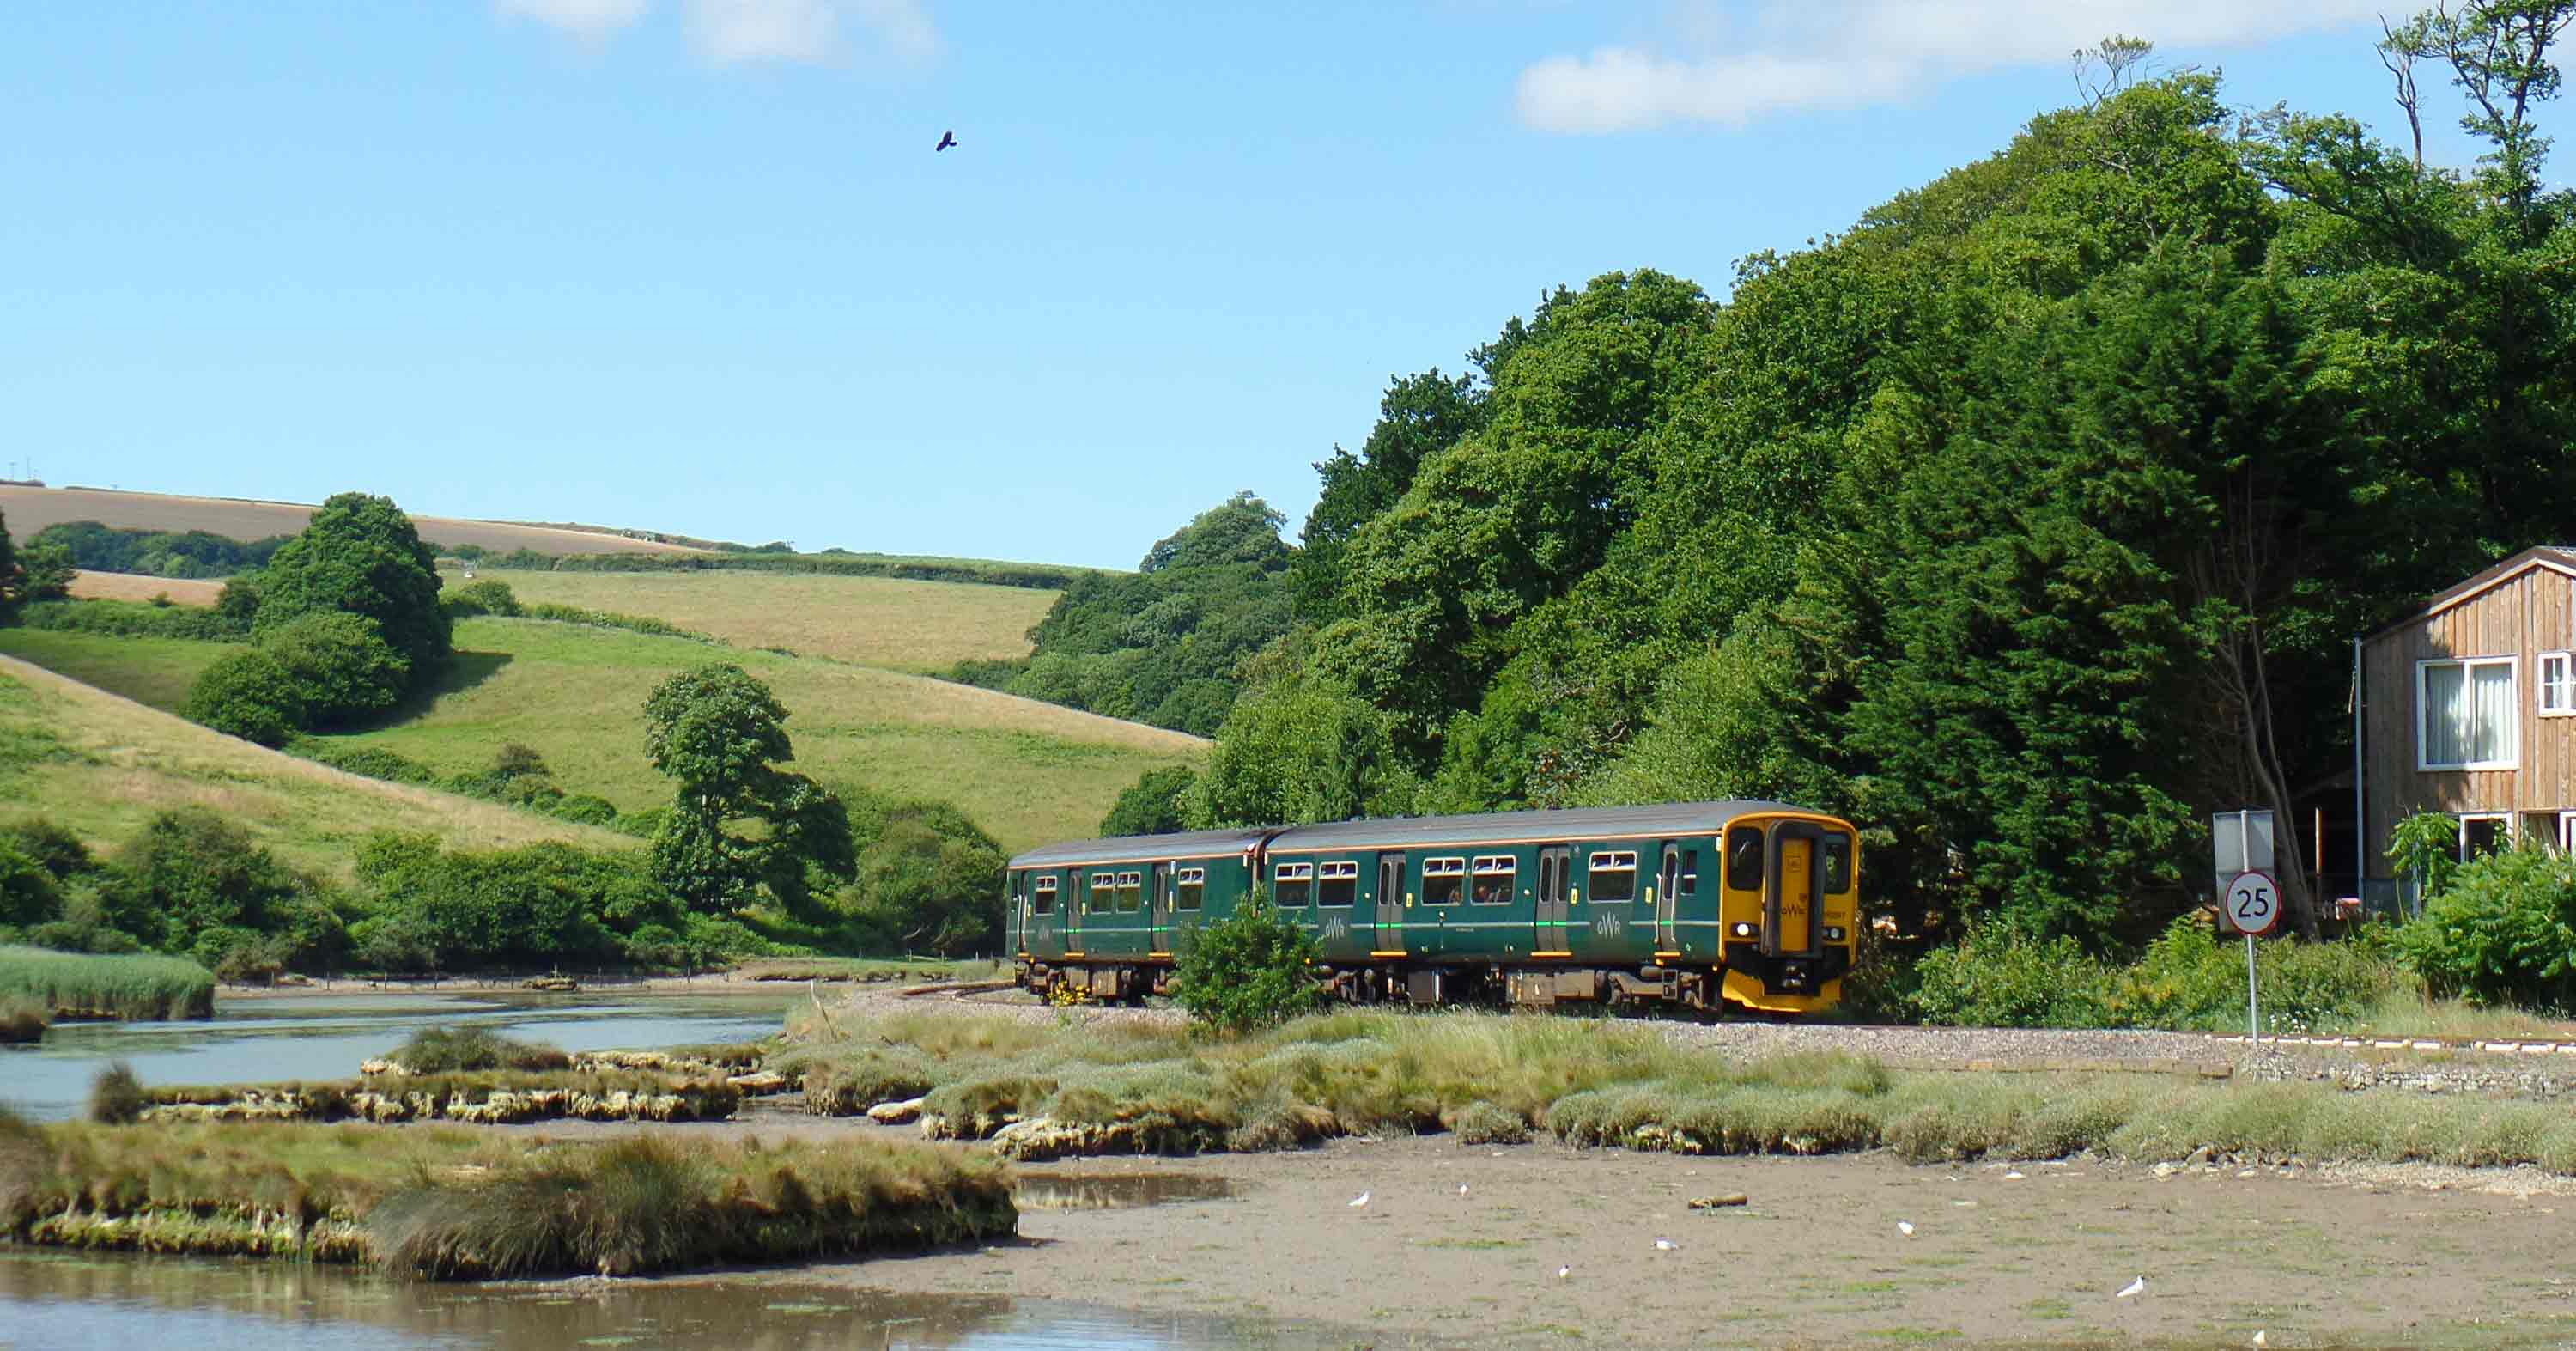 Terras Crossing on the Looe Valley Line